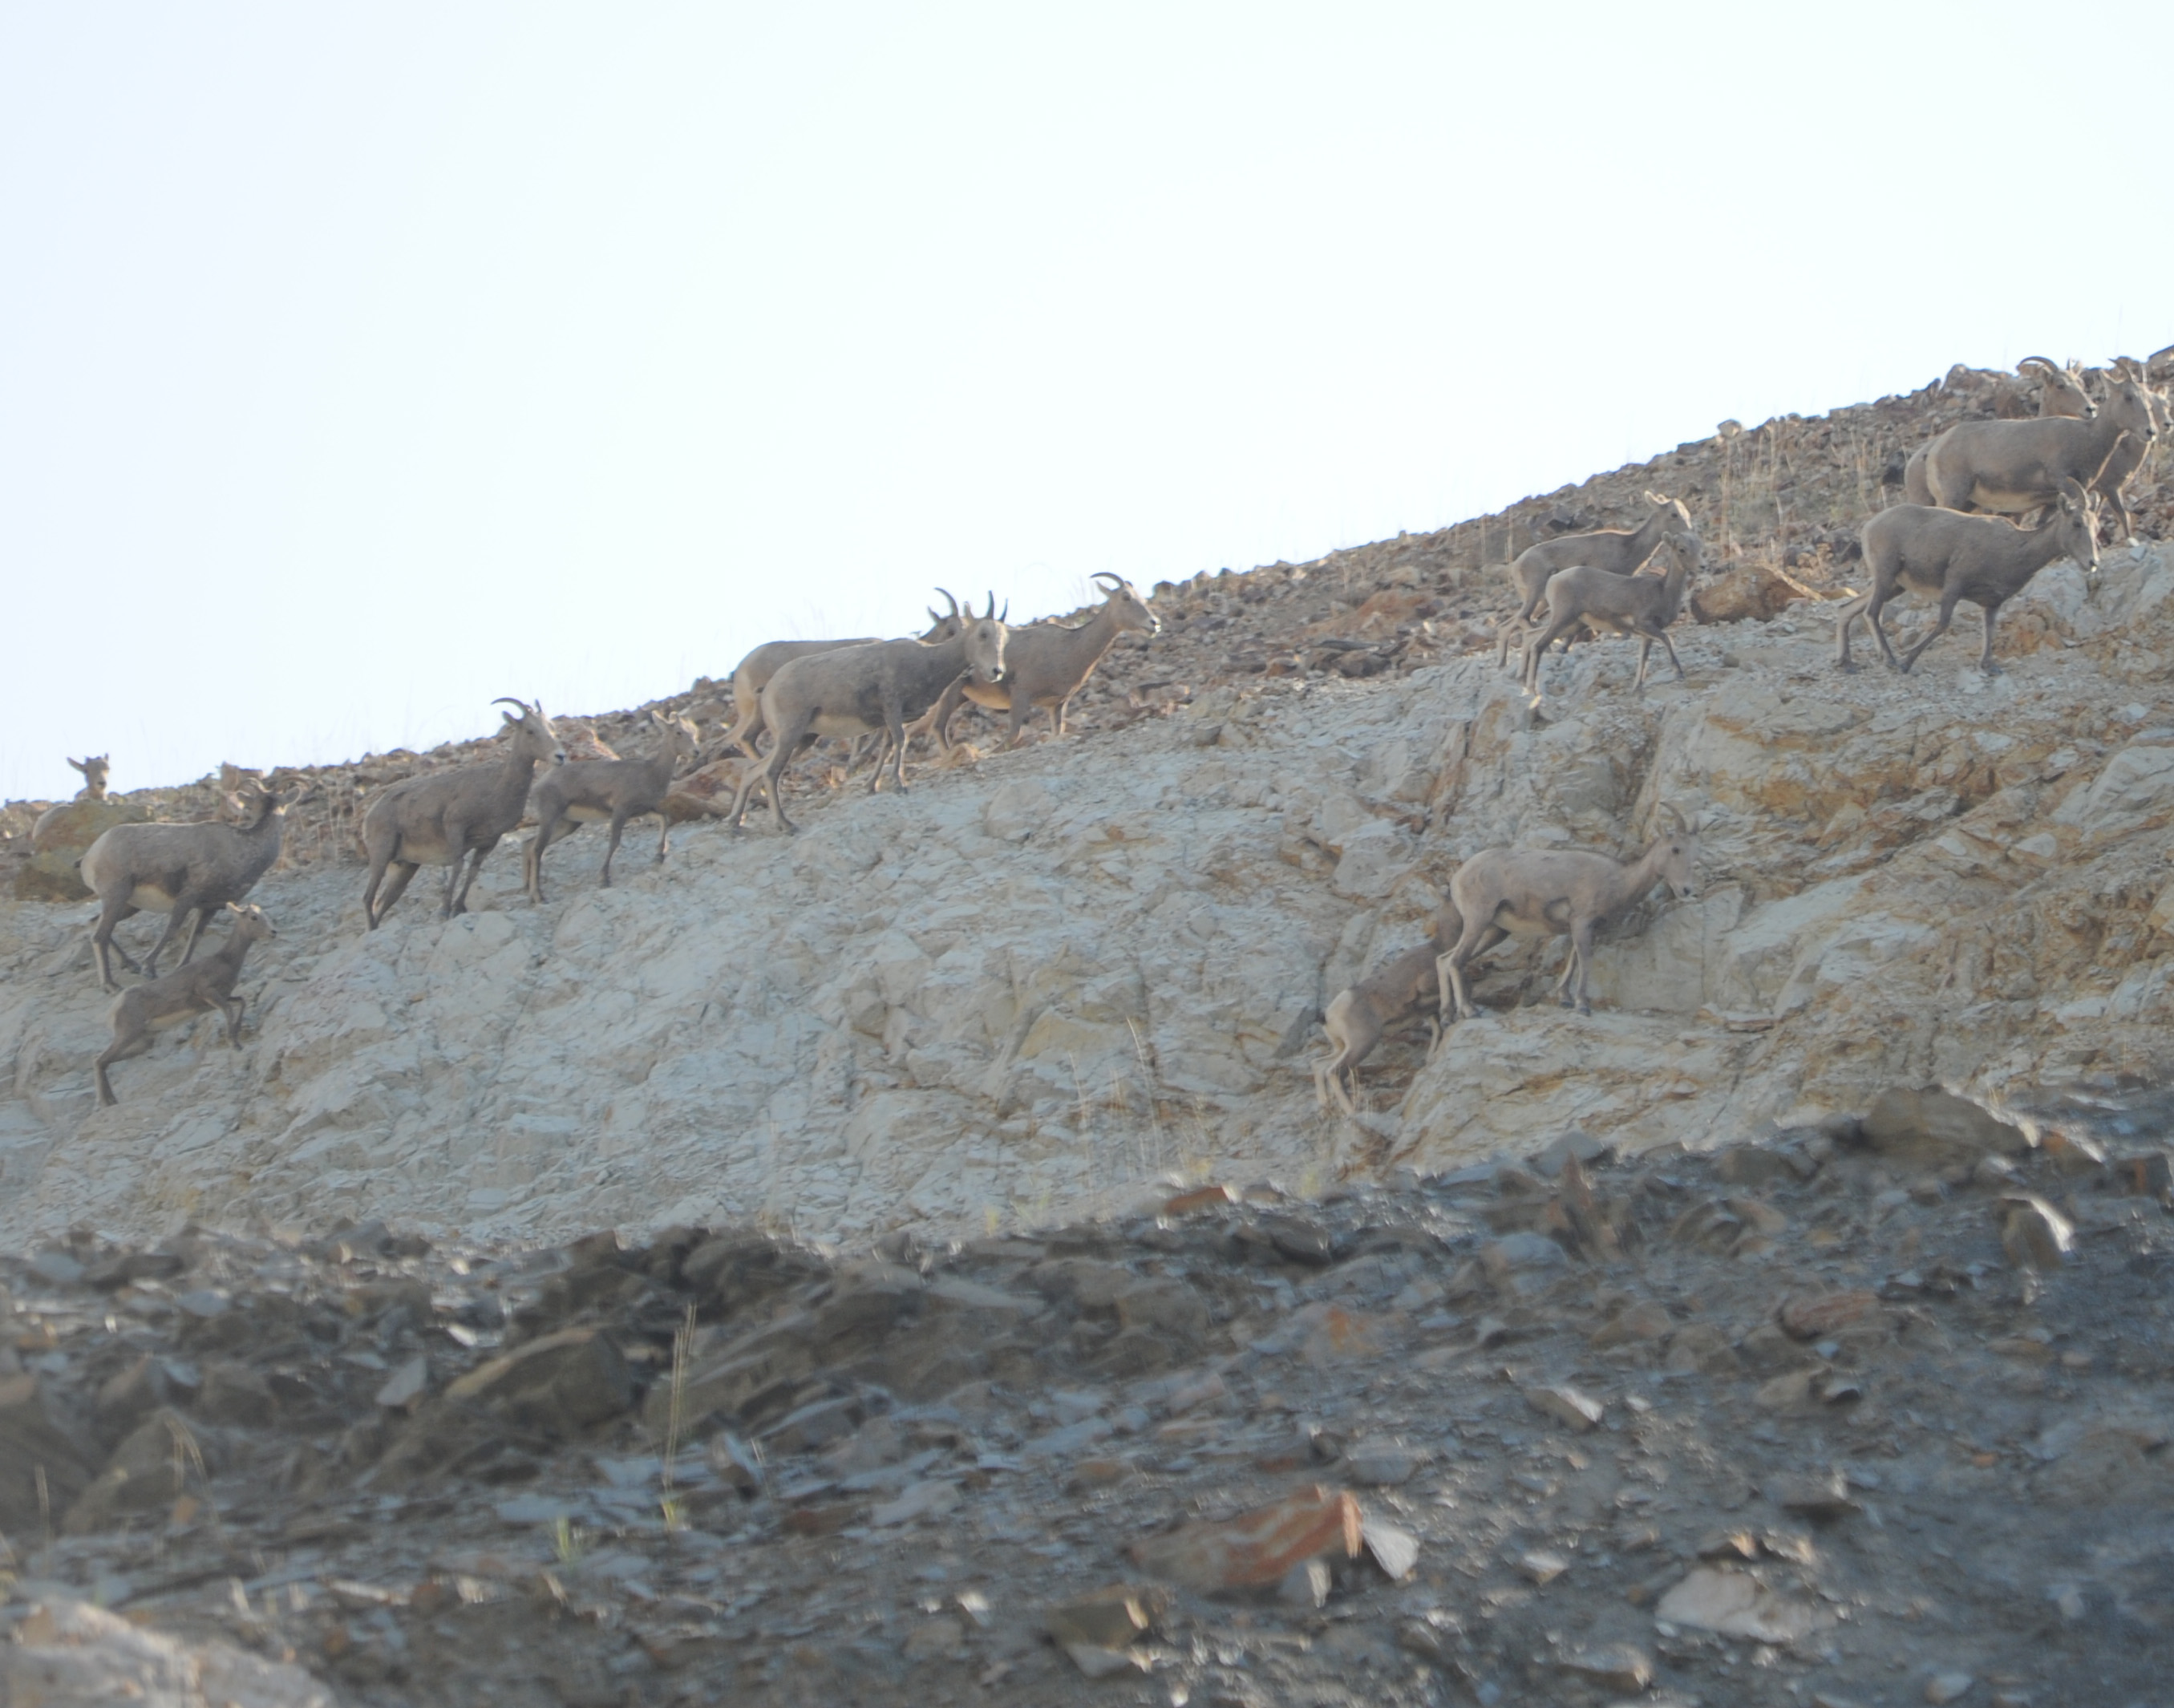 MT Bighorn sheep